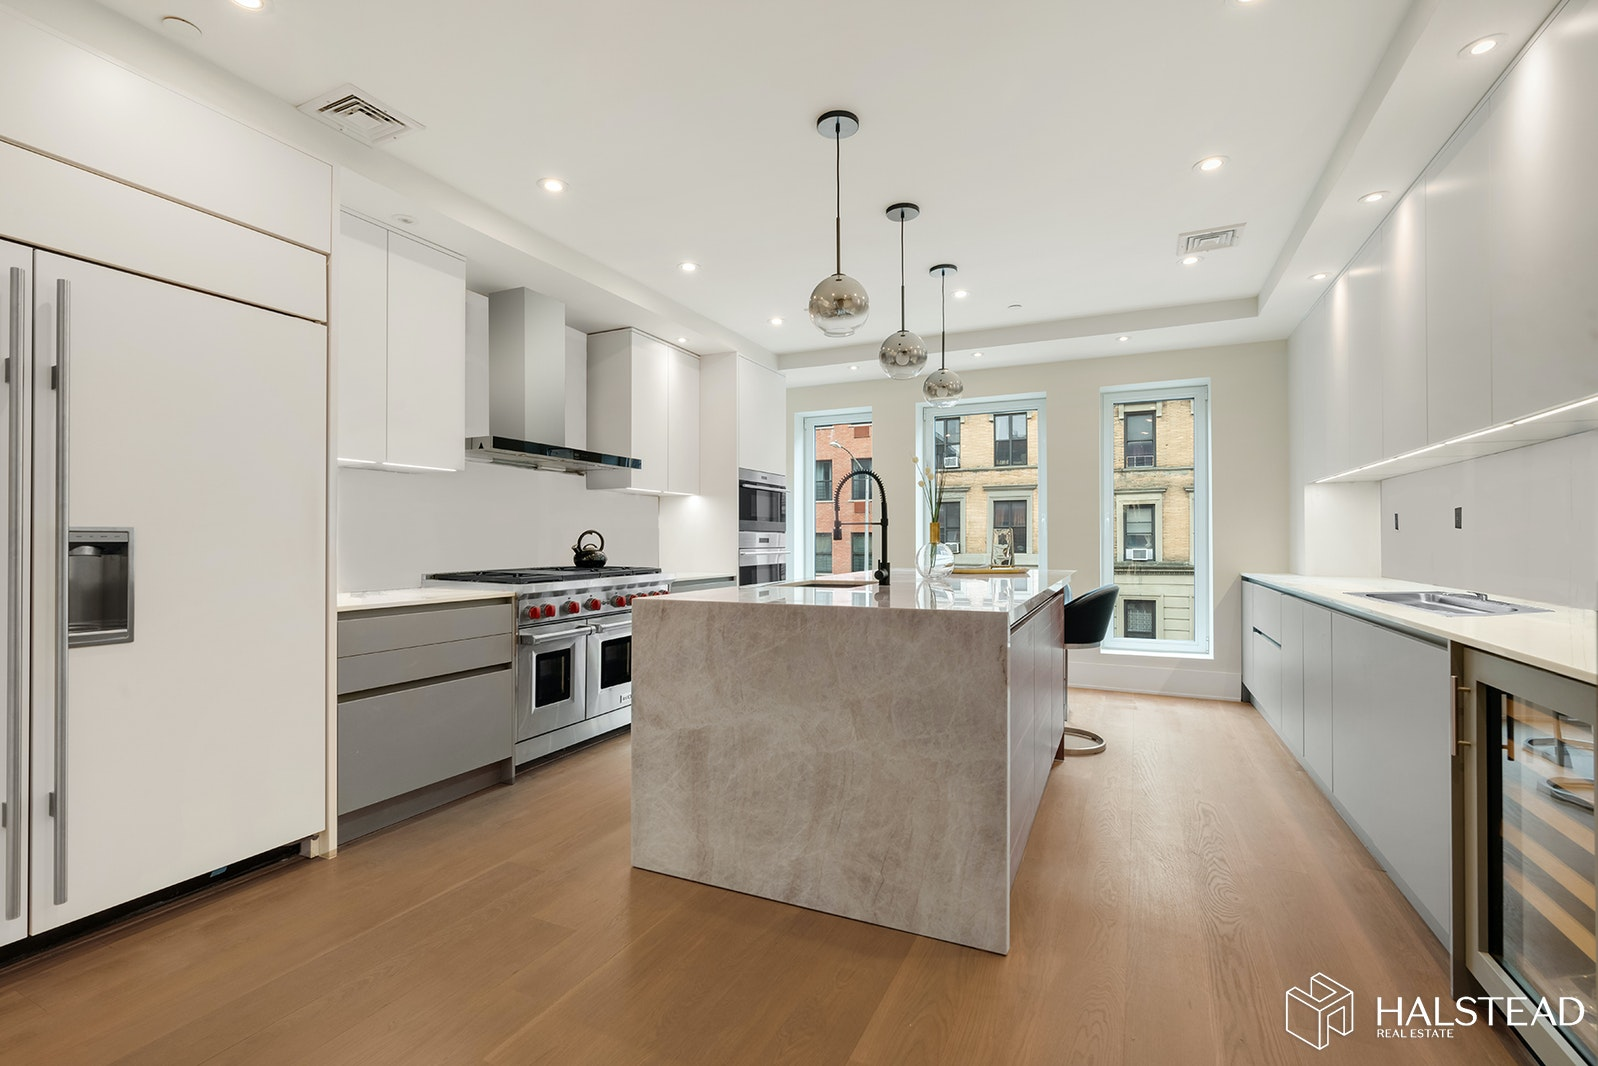 325 West 112th Street Thb, Upper Manhattan, NYC, 10026, $3,995,000, Property For Sale, Halstead Real Estate, Photo 7